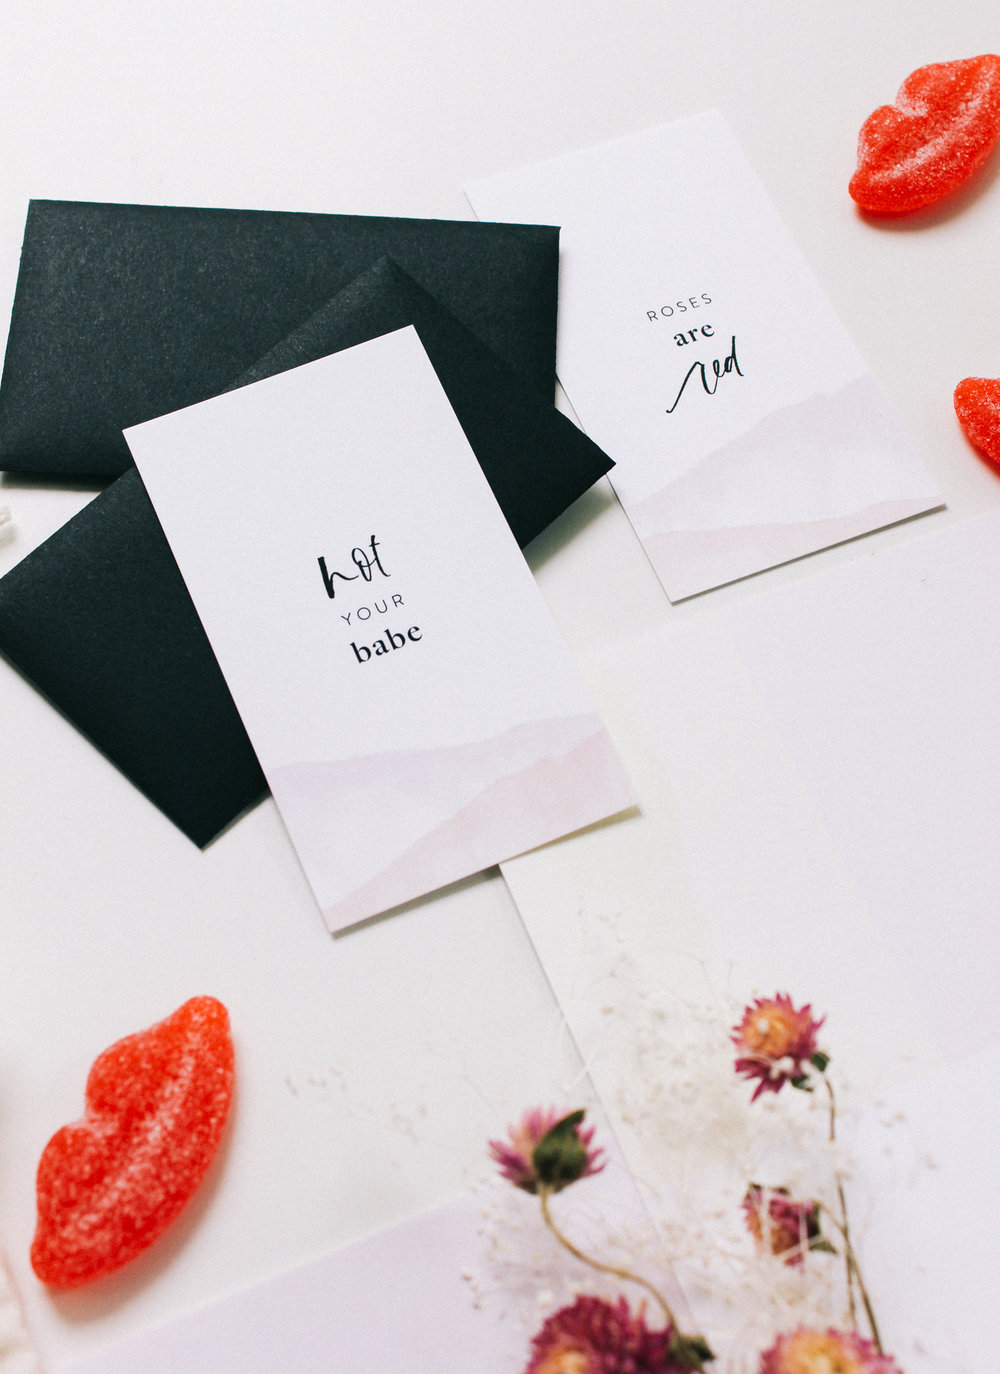 Wilde House Paper Stationery Subscription Box | Mini valentines with black envelopes